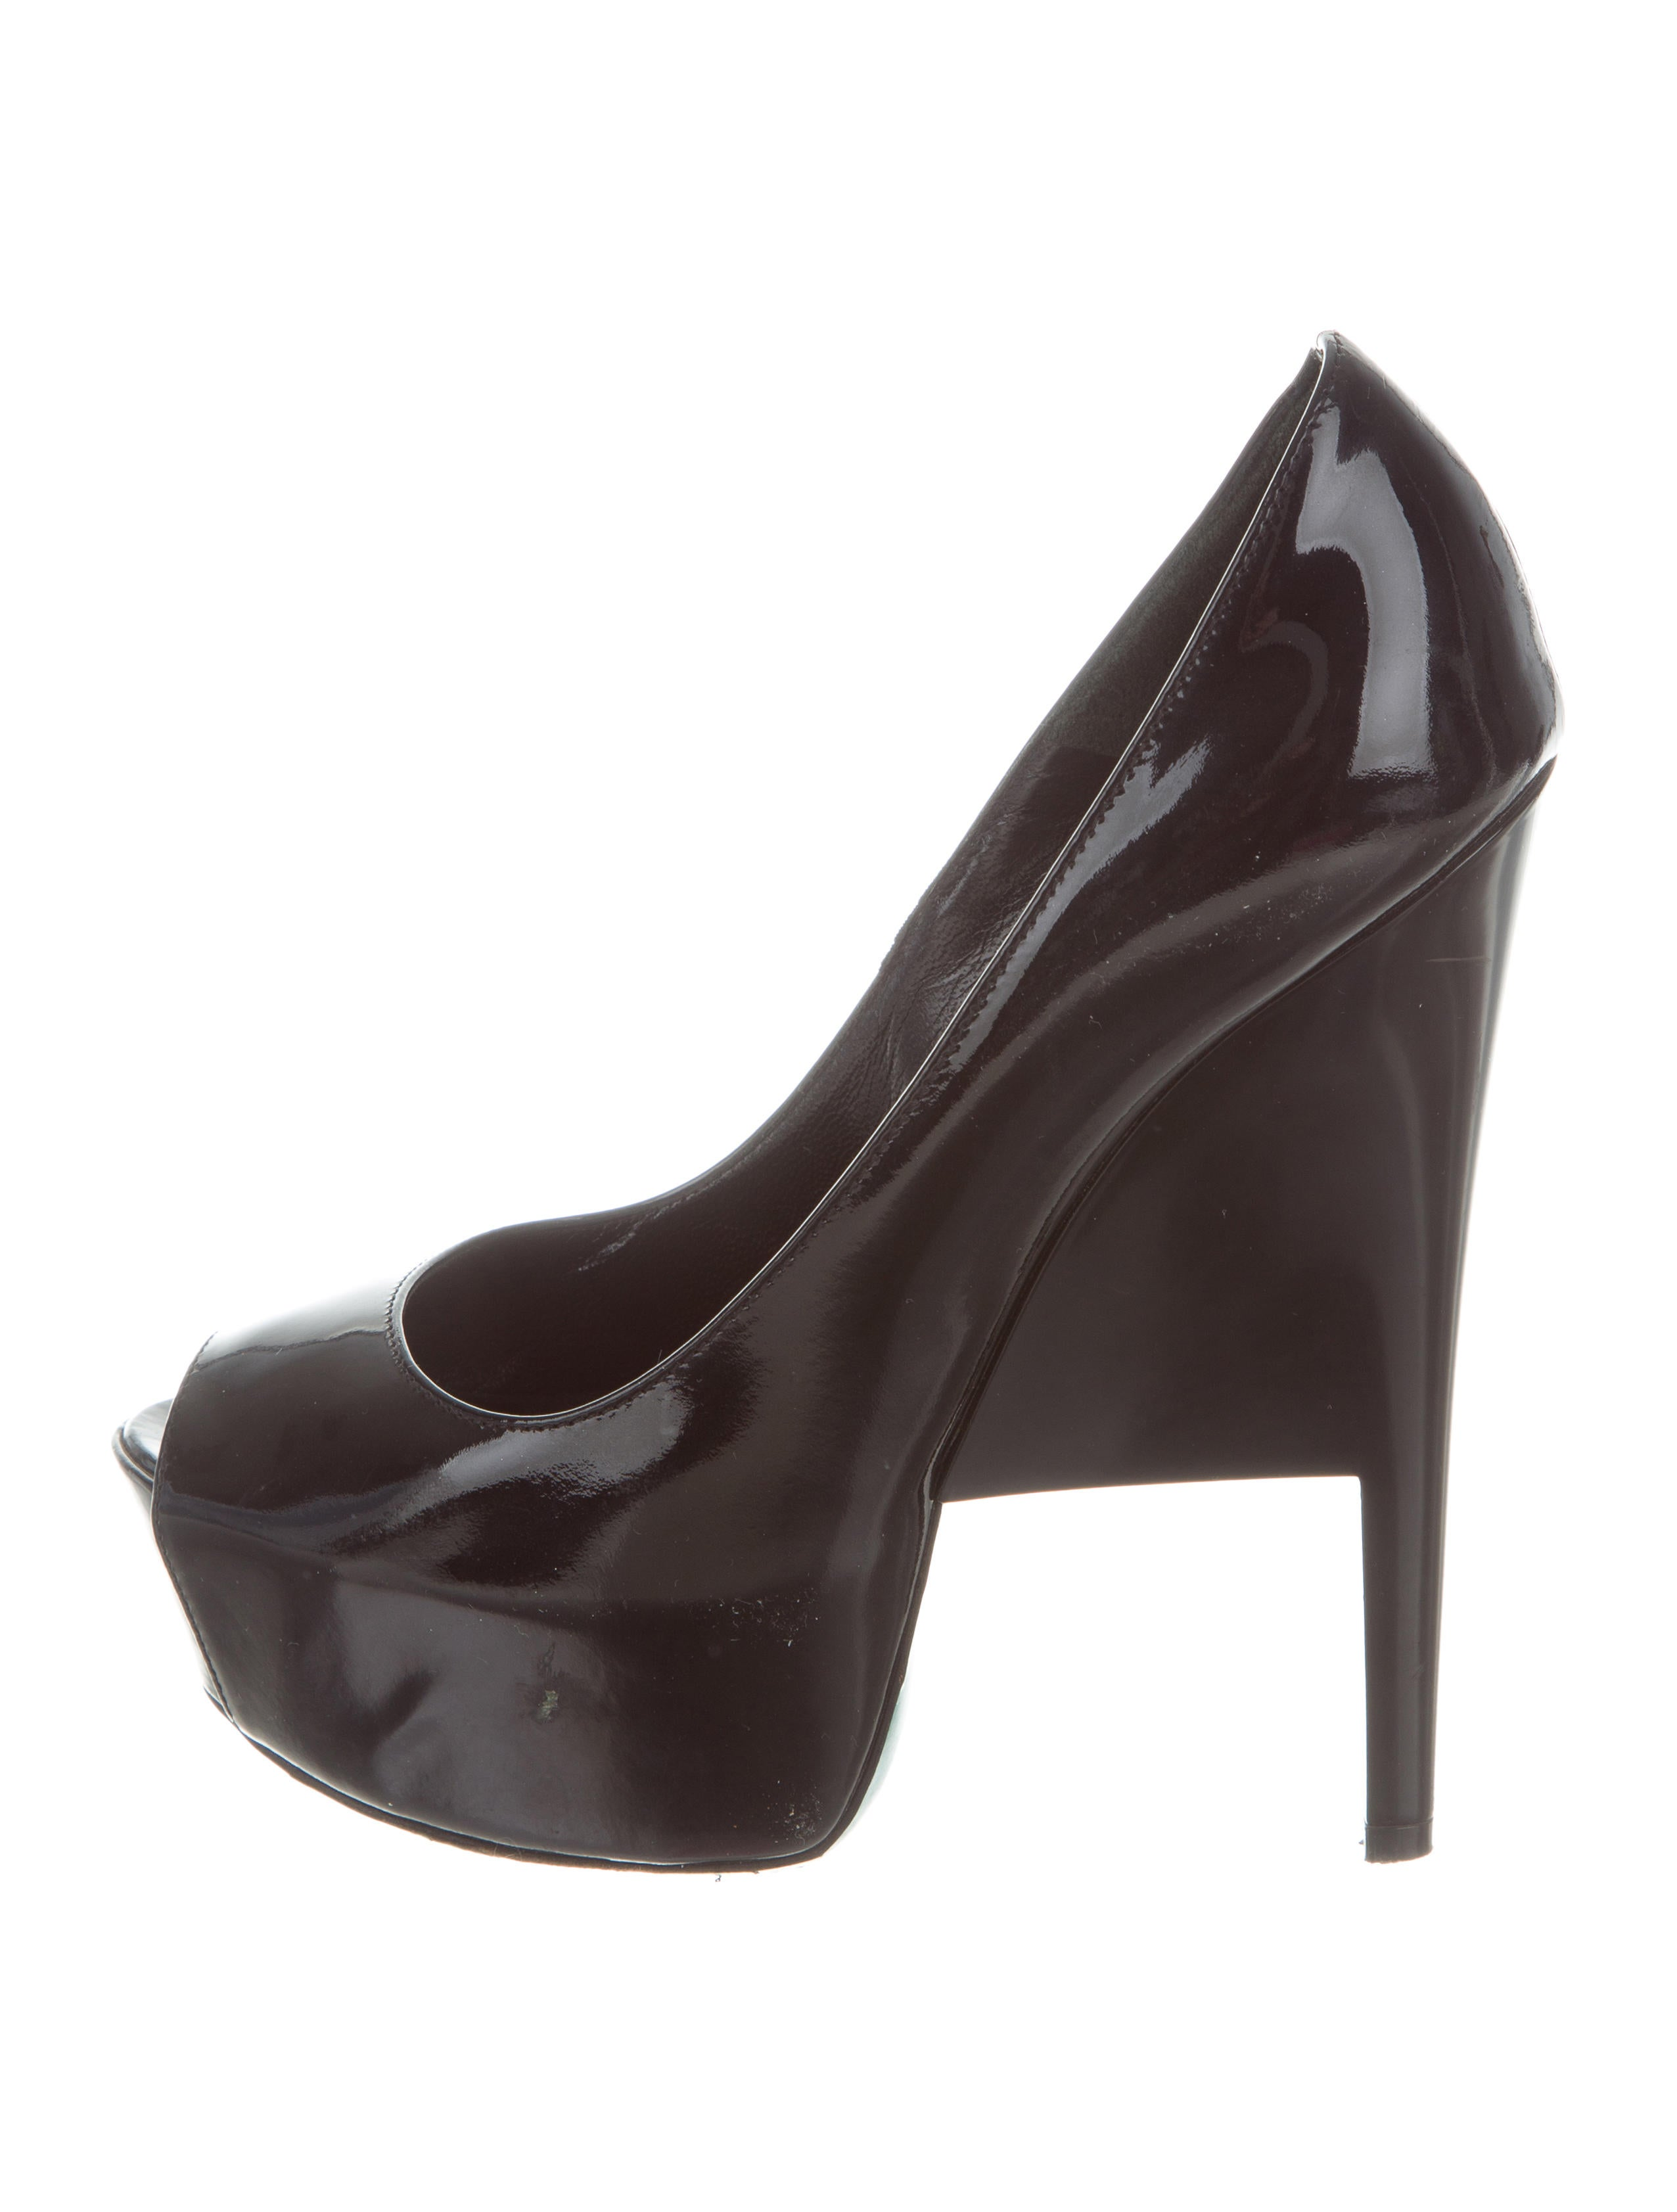 free shipping for nice outlet store cheap price Ruthie Davis Mena Platform Pumps really for sale VqKqnuVbCh